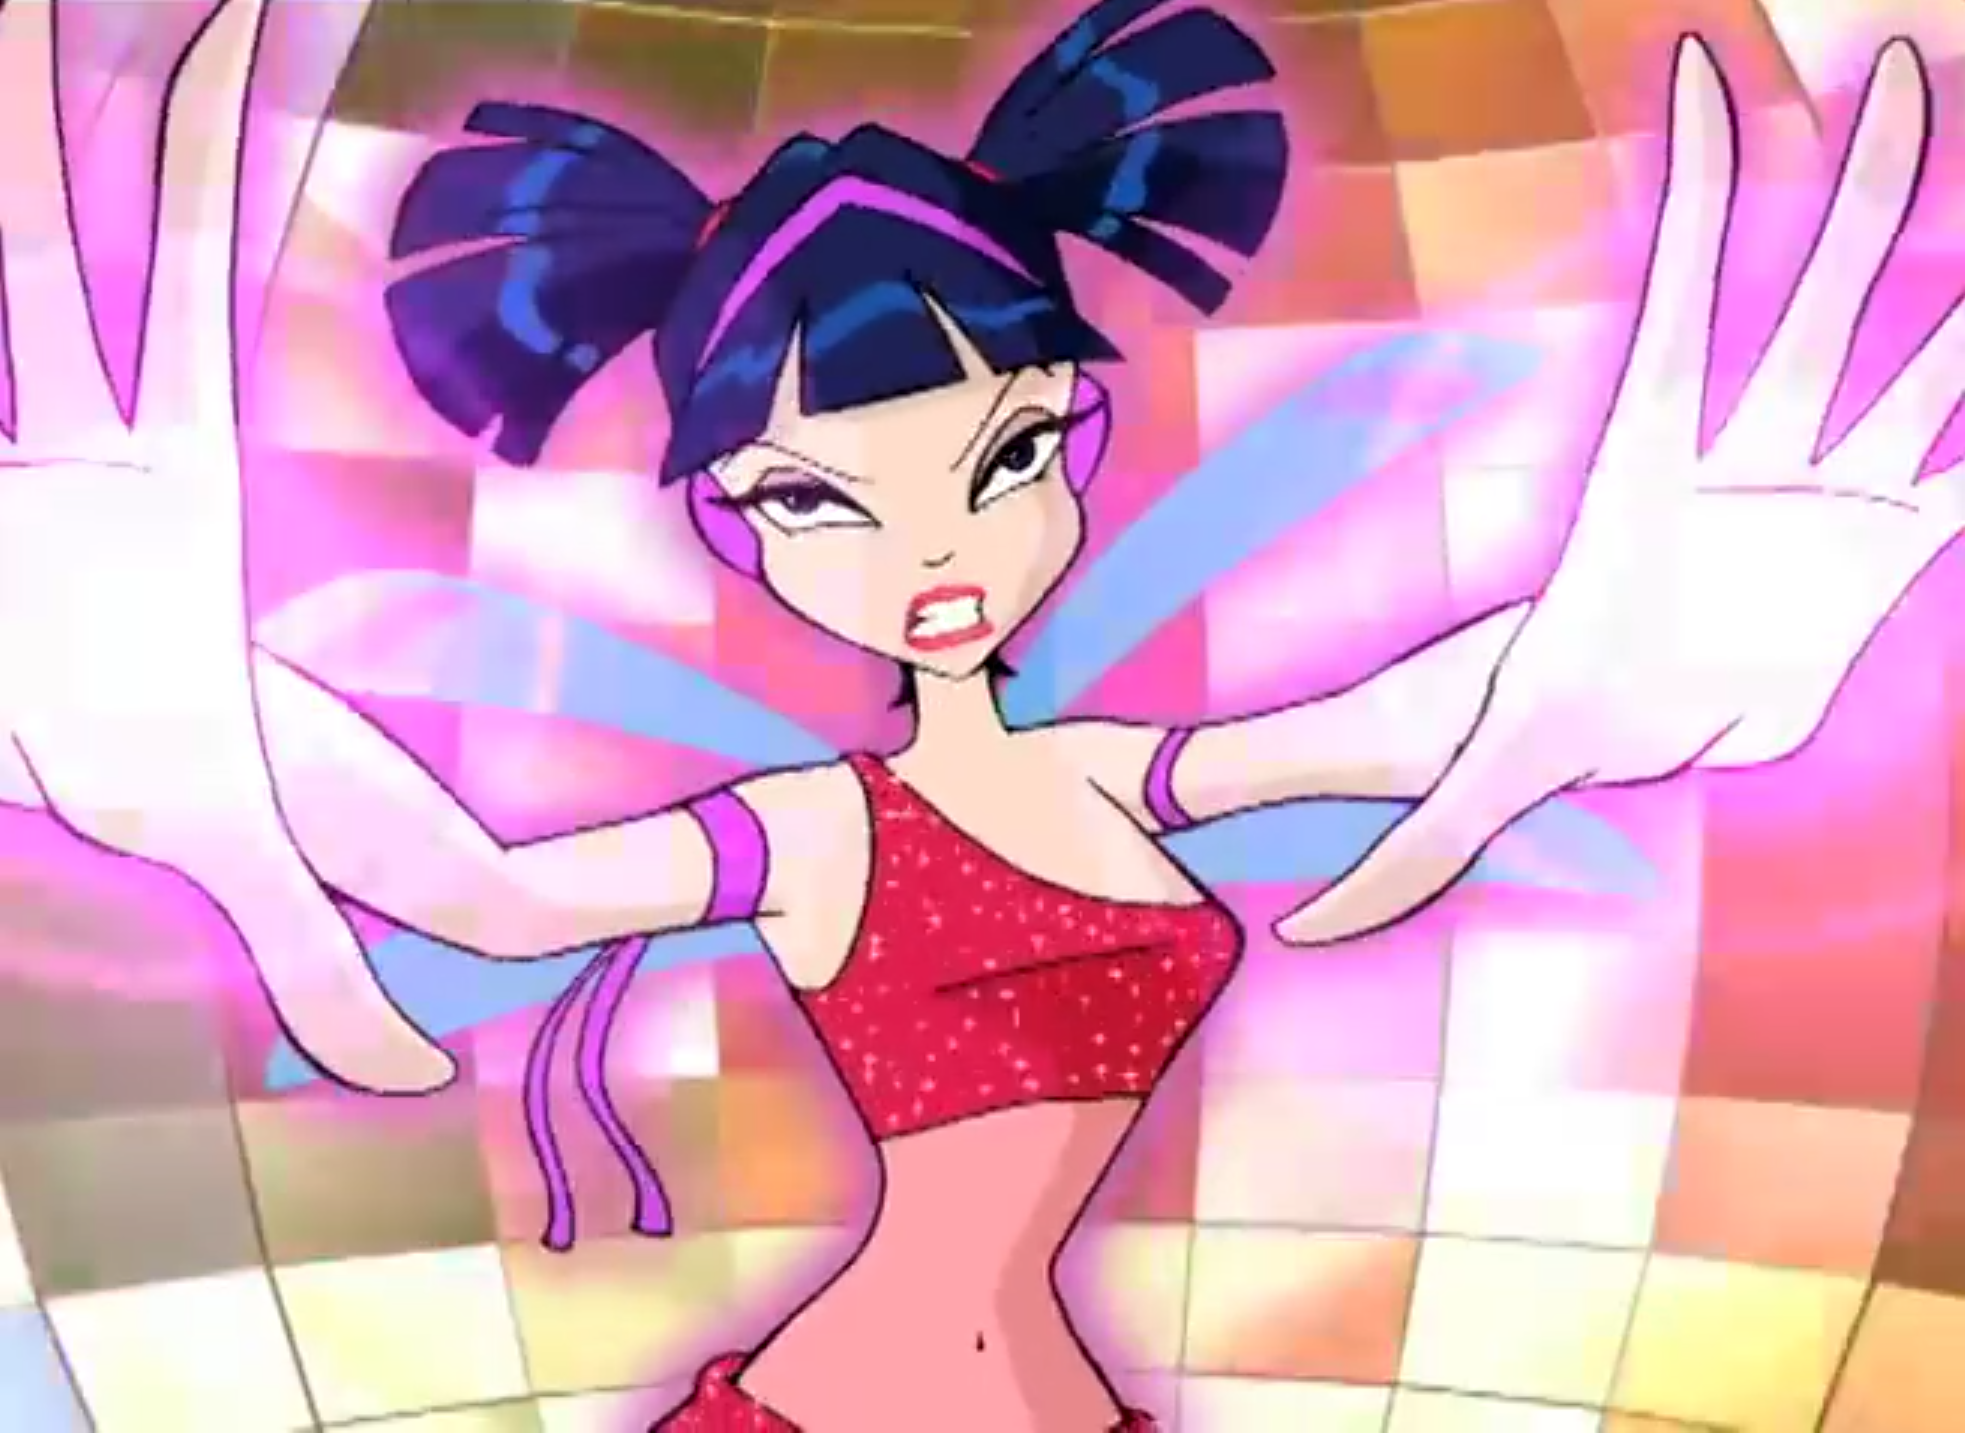 http://images.wikia.com/winx/images/0/02/Sonic_blast_101.png